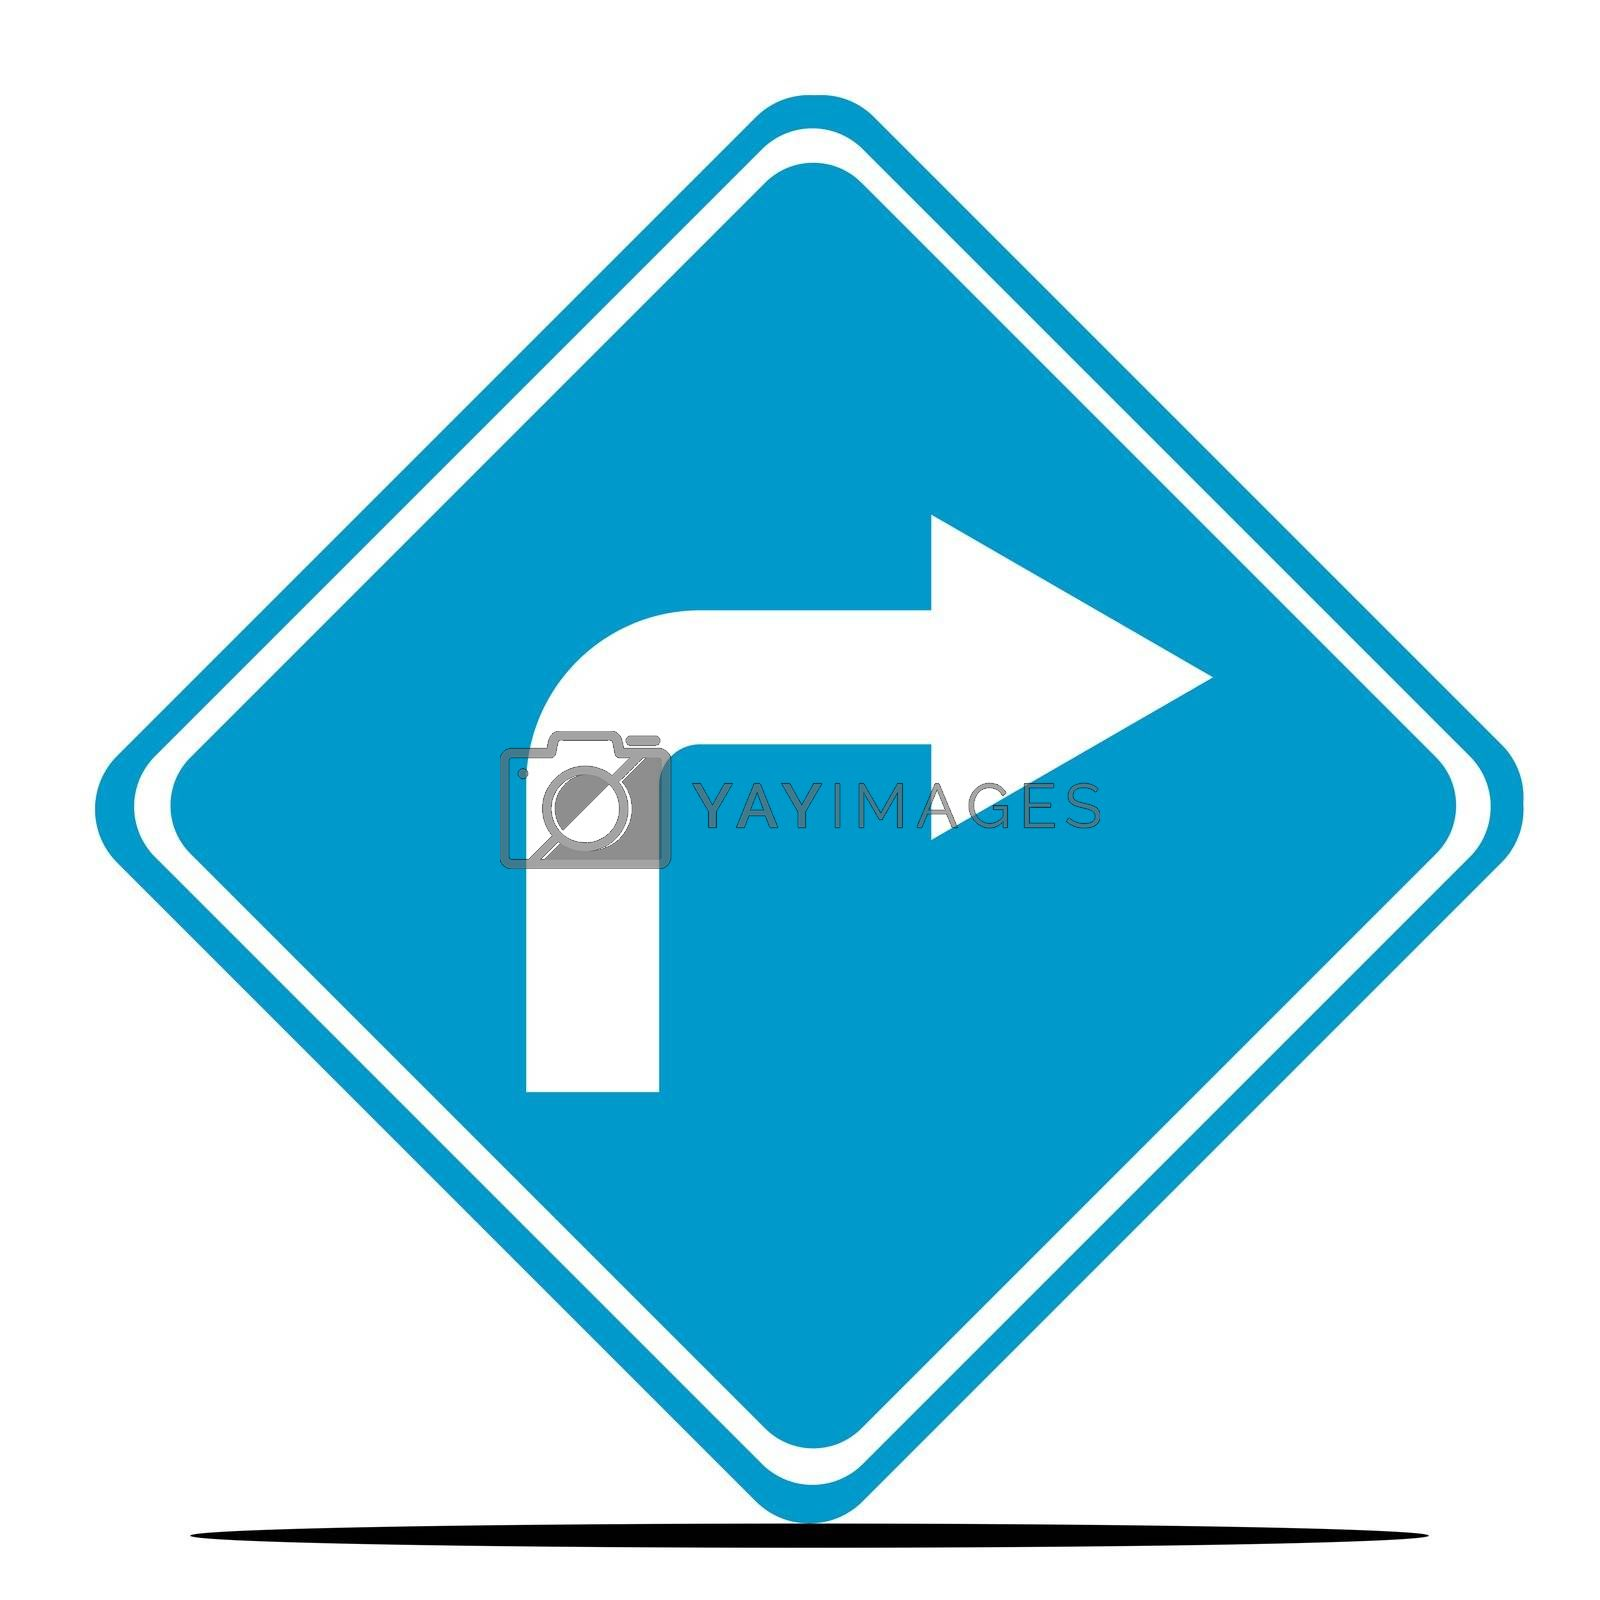 Royalty free image of Directional traffic sign by speedfighter